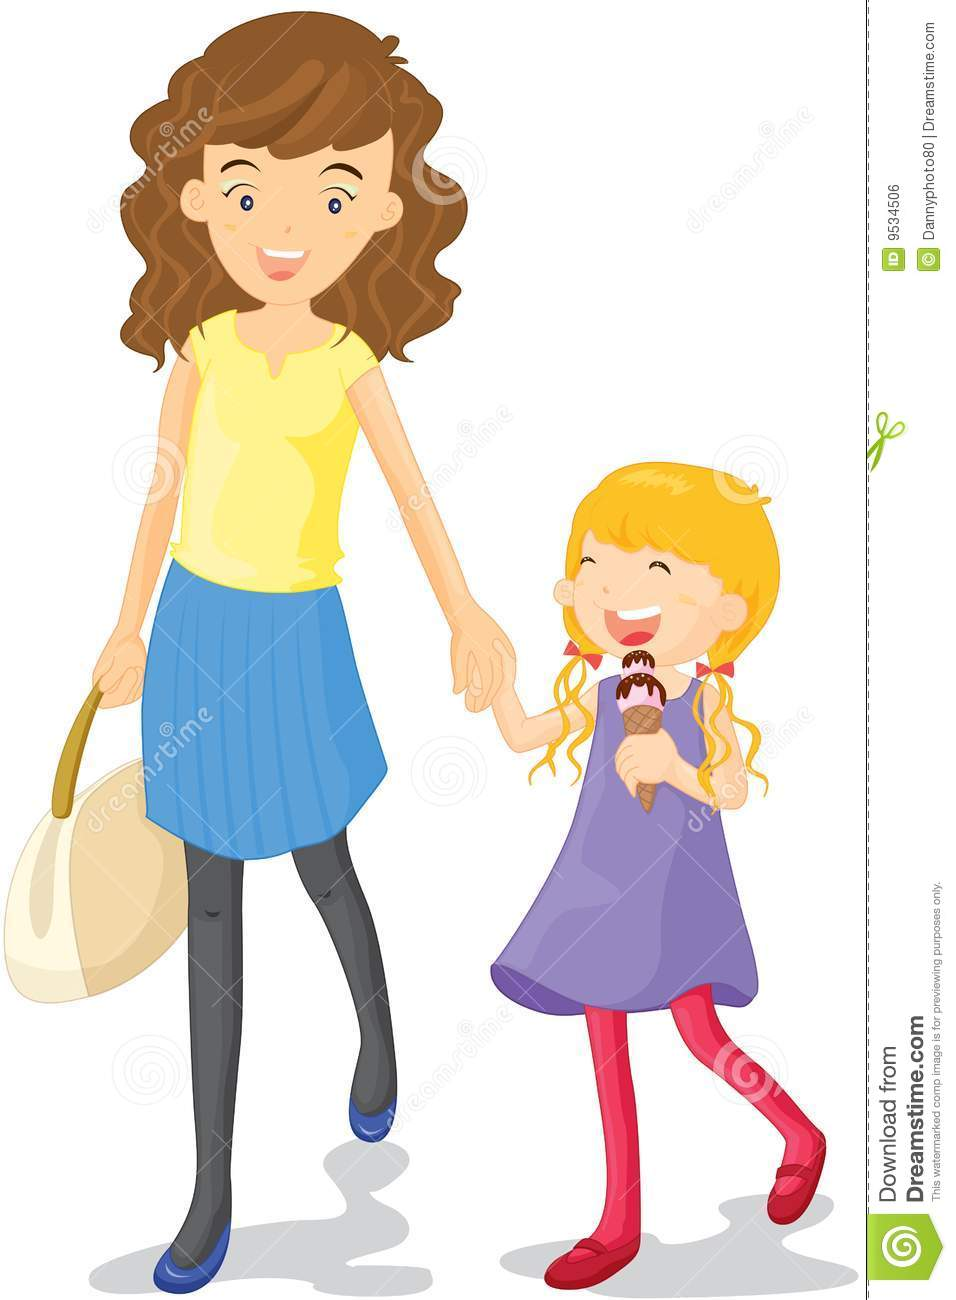 Mother And Daughter Royalty Free Stock Image - Image: 9534506